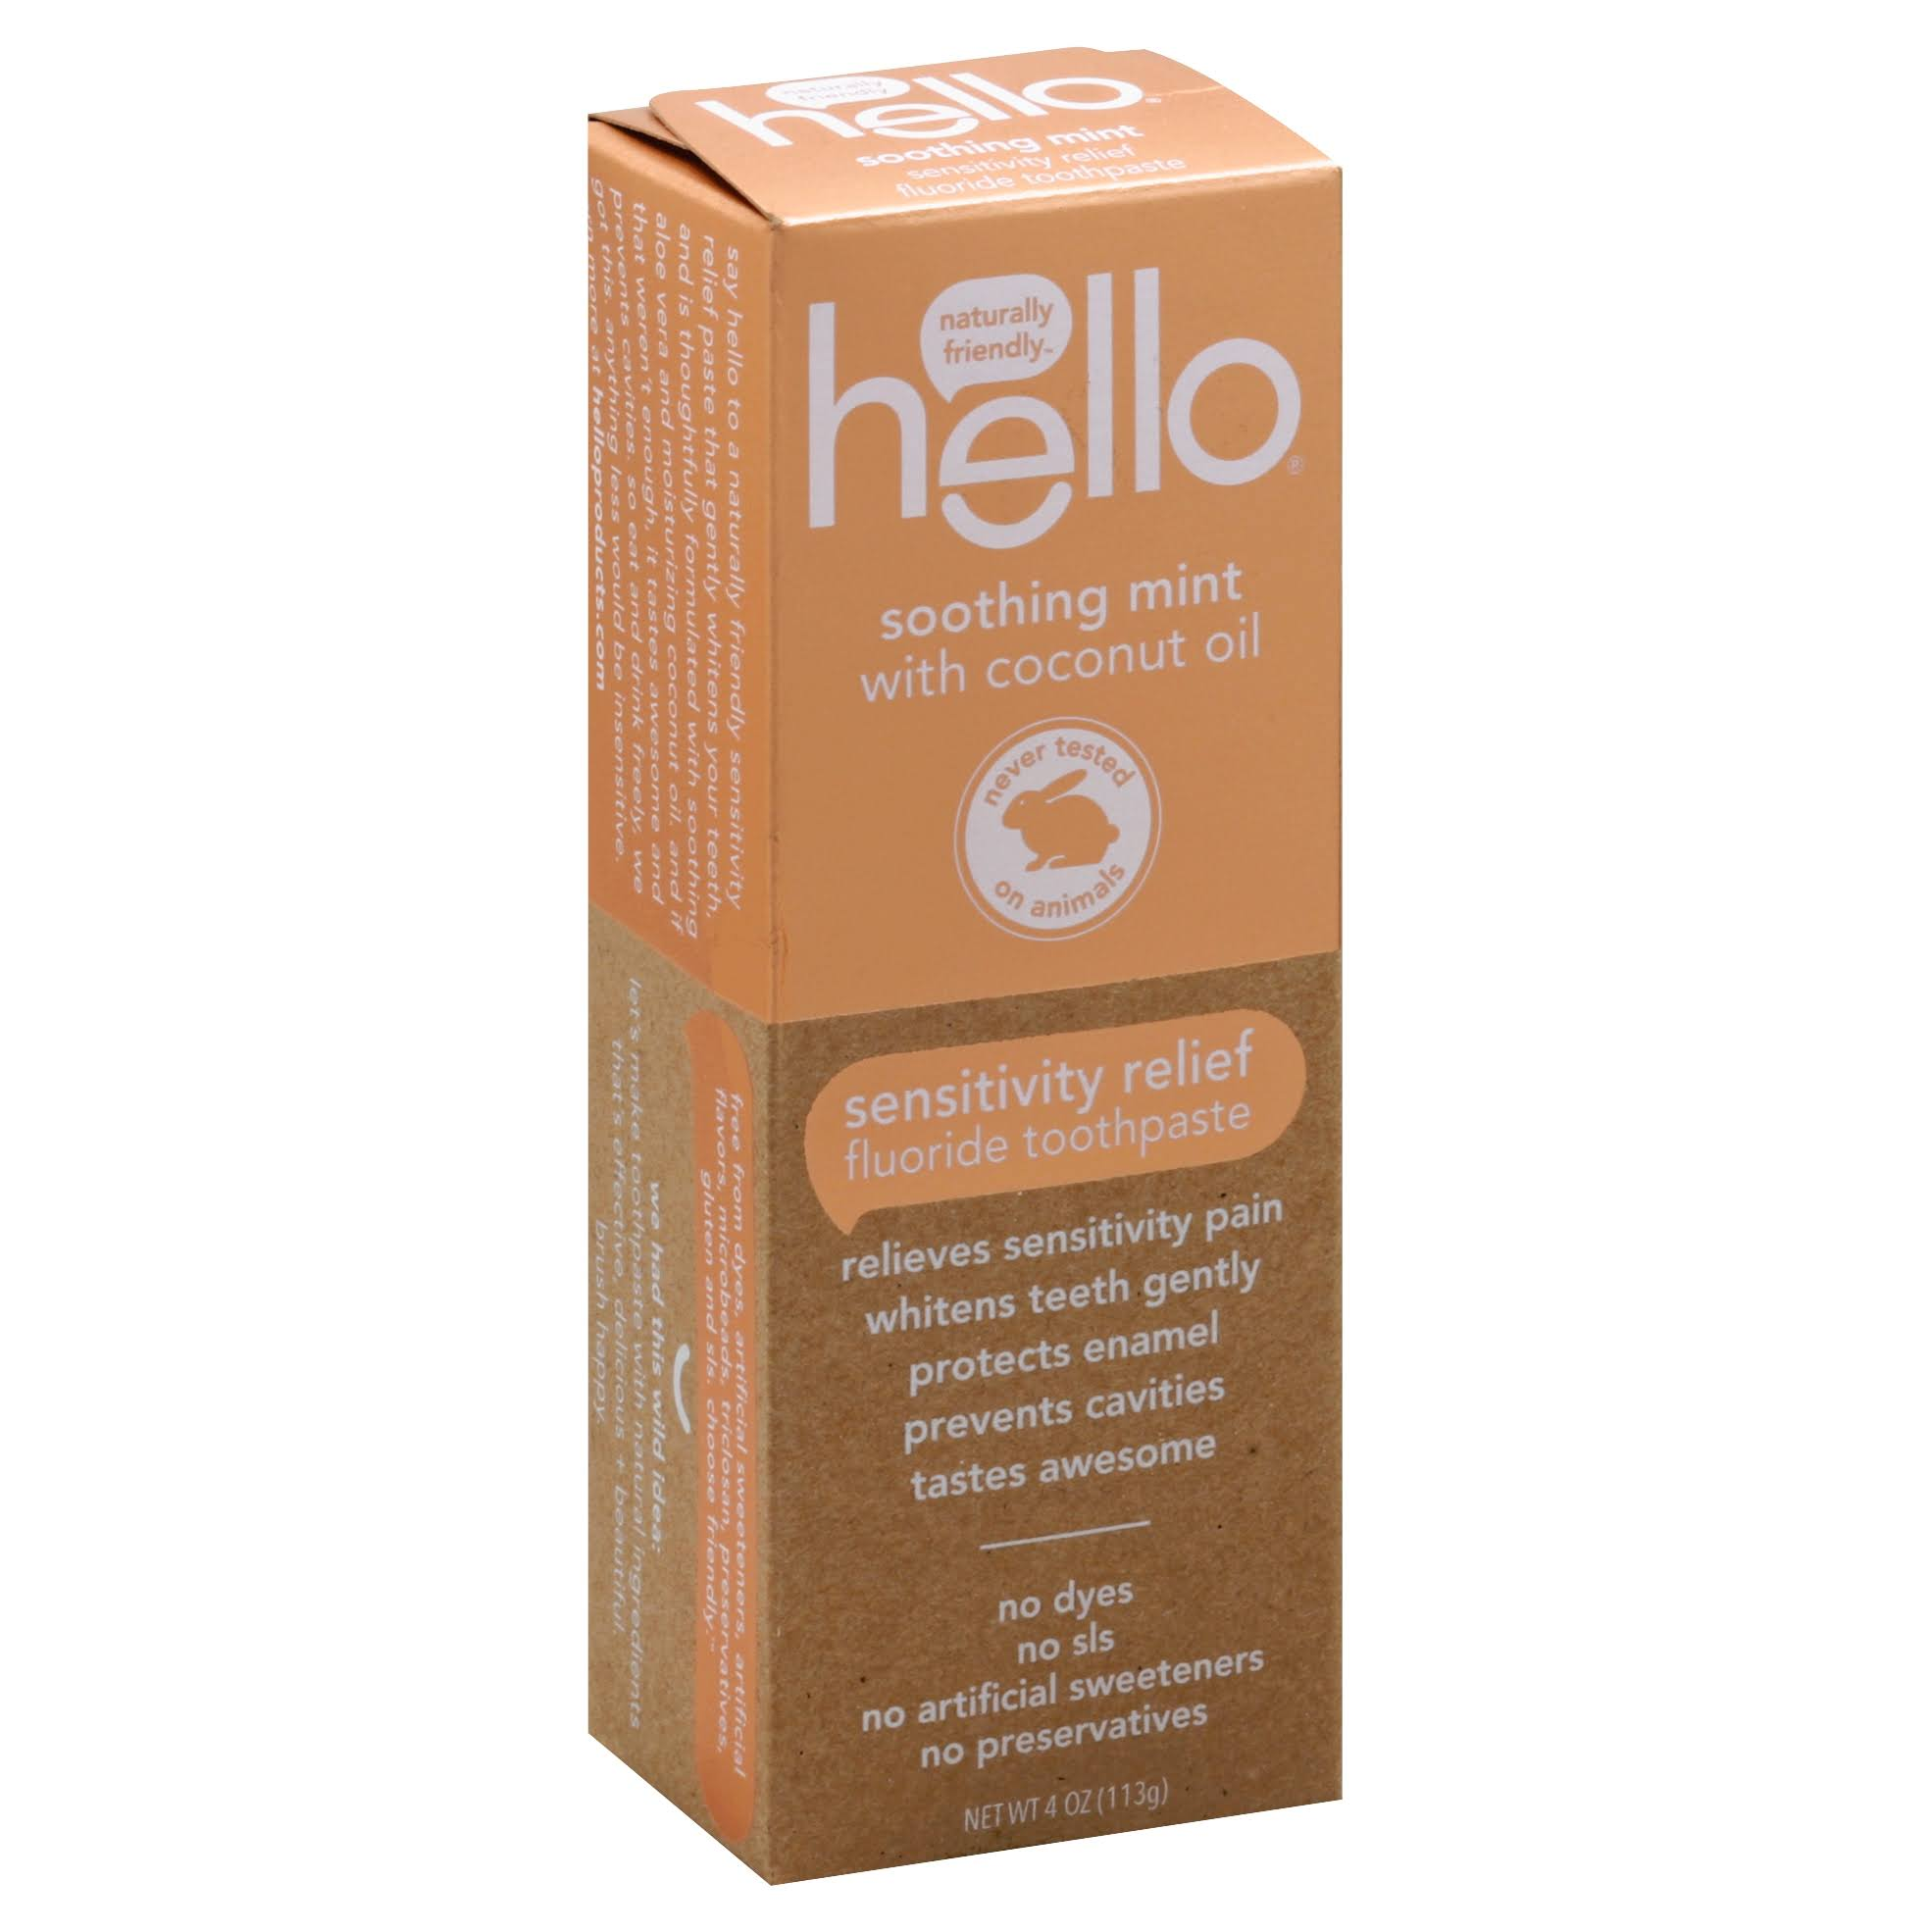 Hello Naturally Friendly Sensitivity Relief Fluoride Toothpaste - 4oz